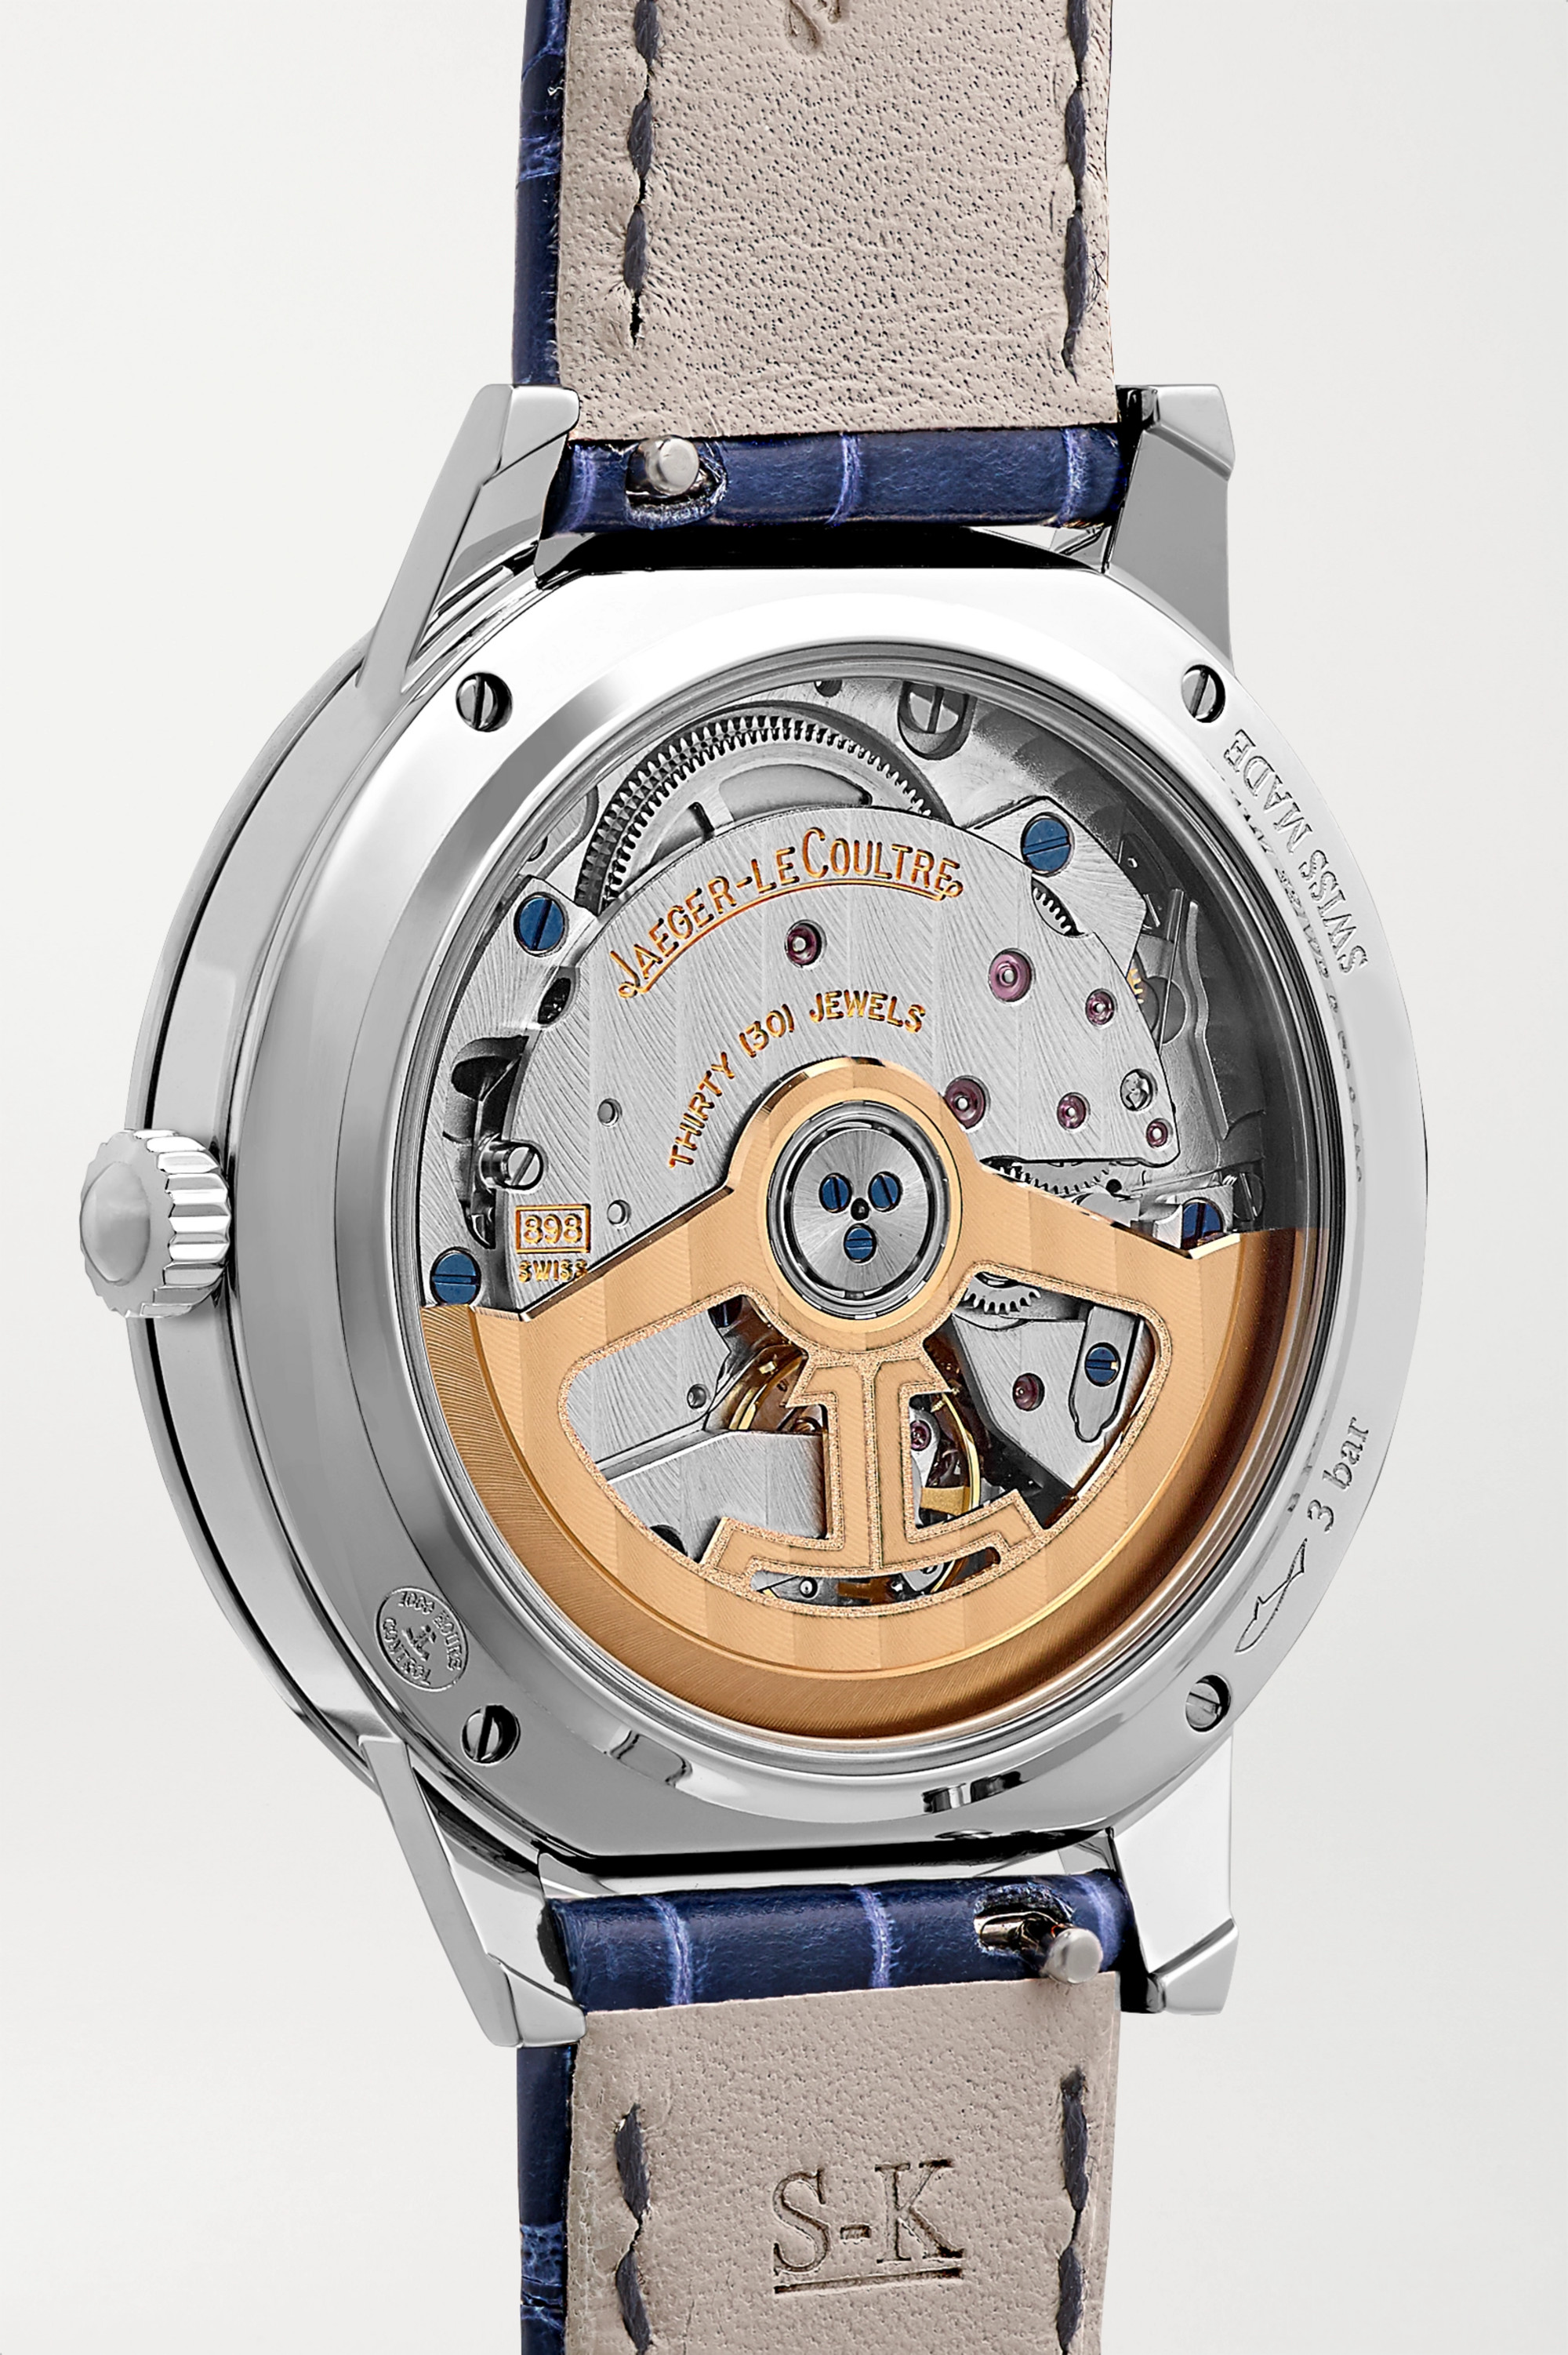 Jaeger-LeCoultre Rendez-Vous Night & Day Automatic 34mm stainless steel, alligator and diamond watch